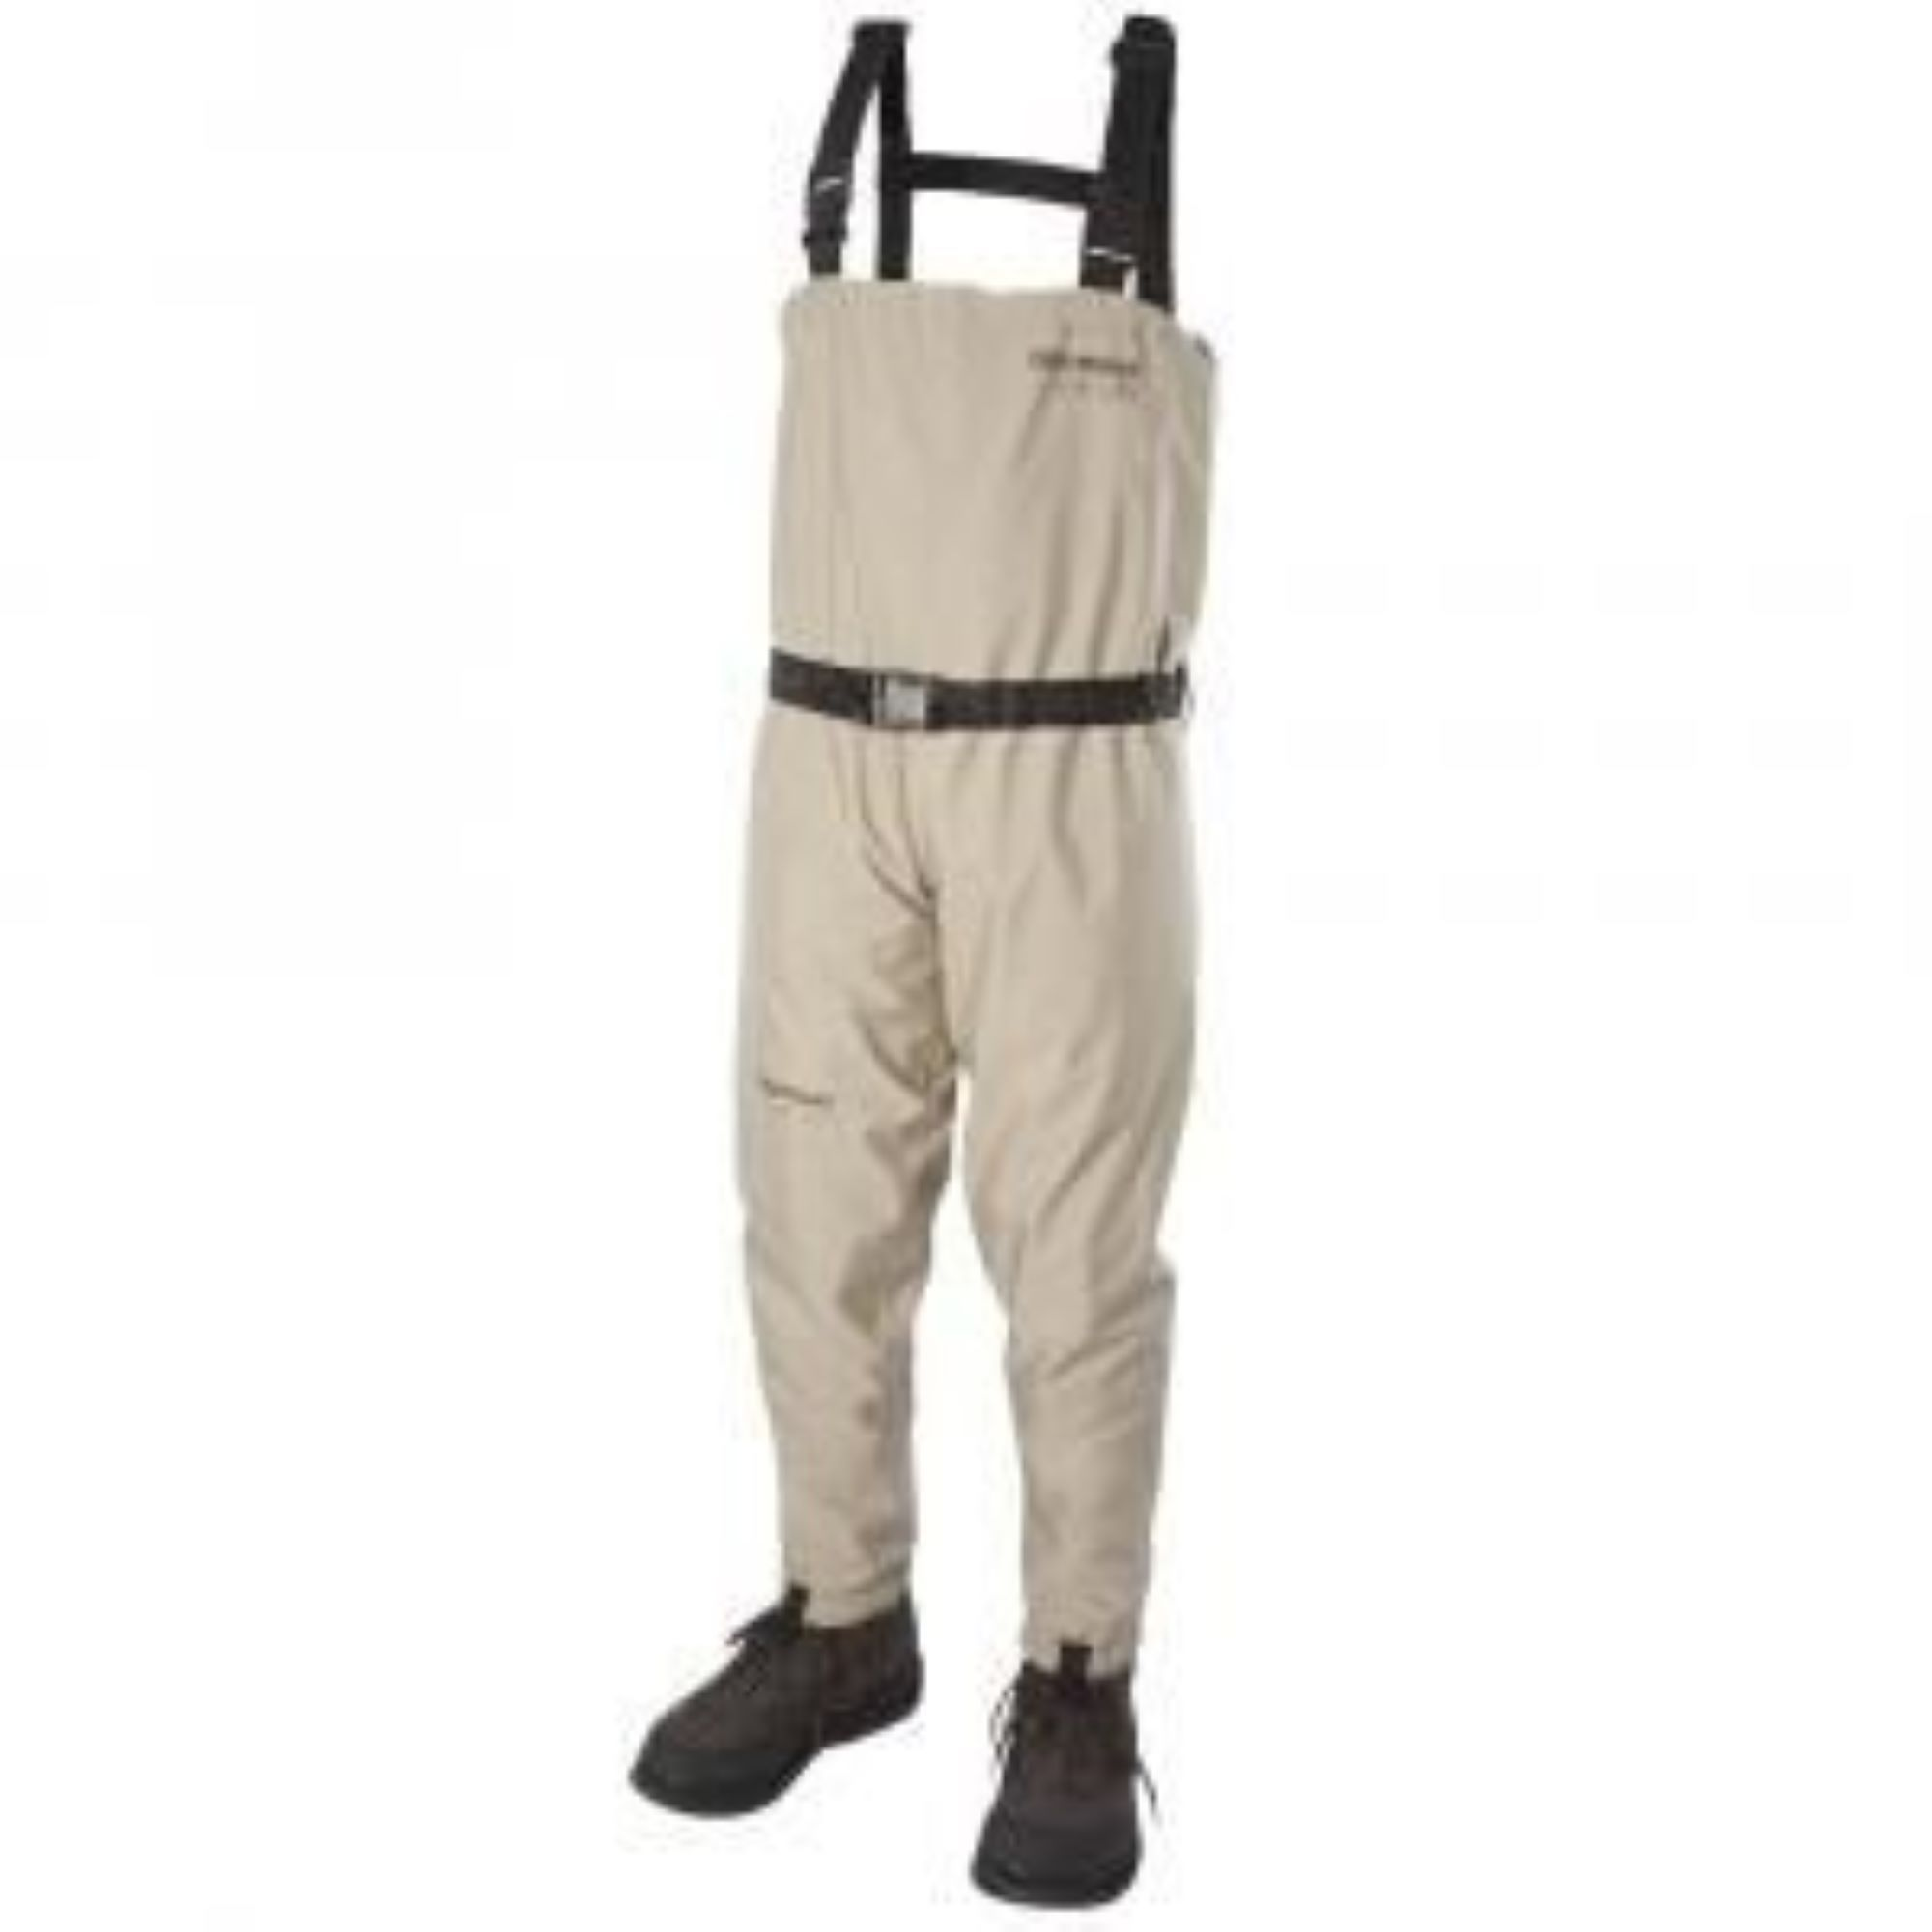 Snowbee Breathable stocking foot waders